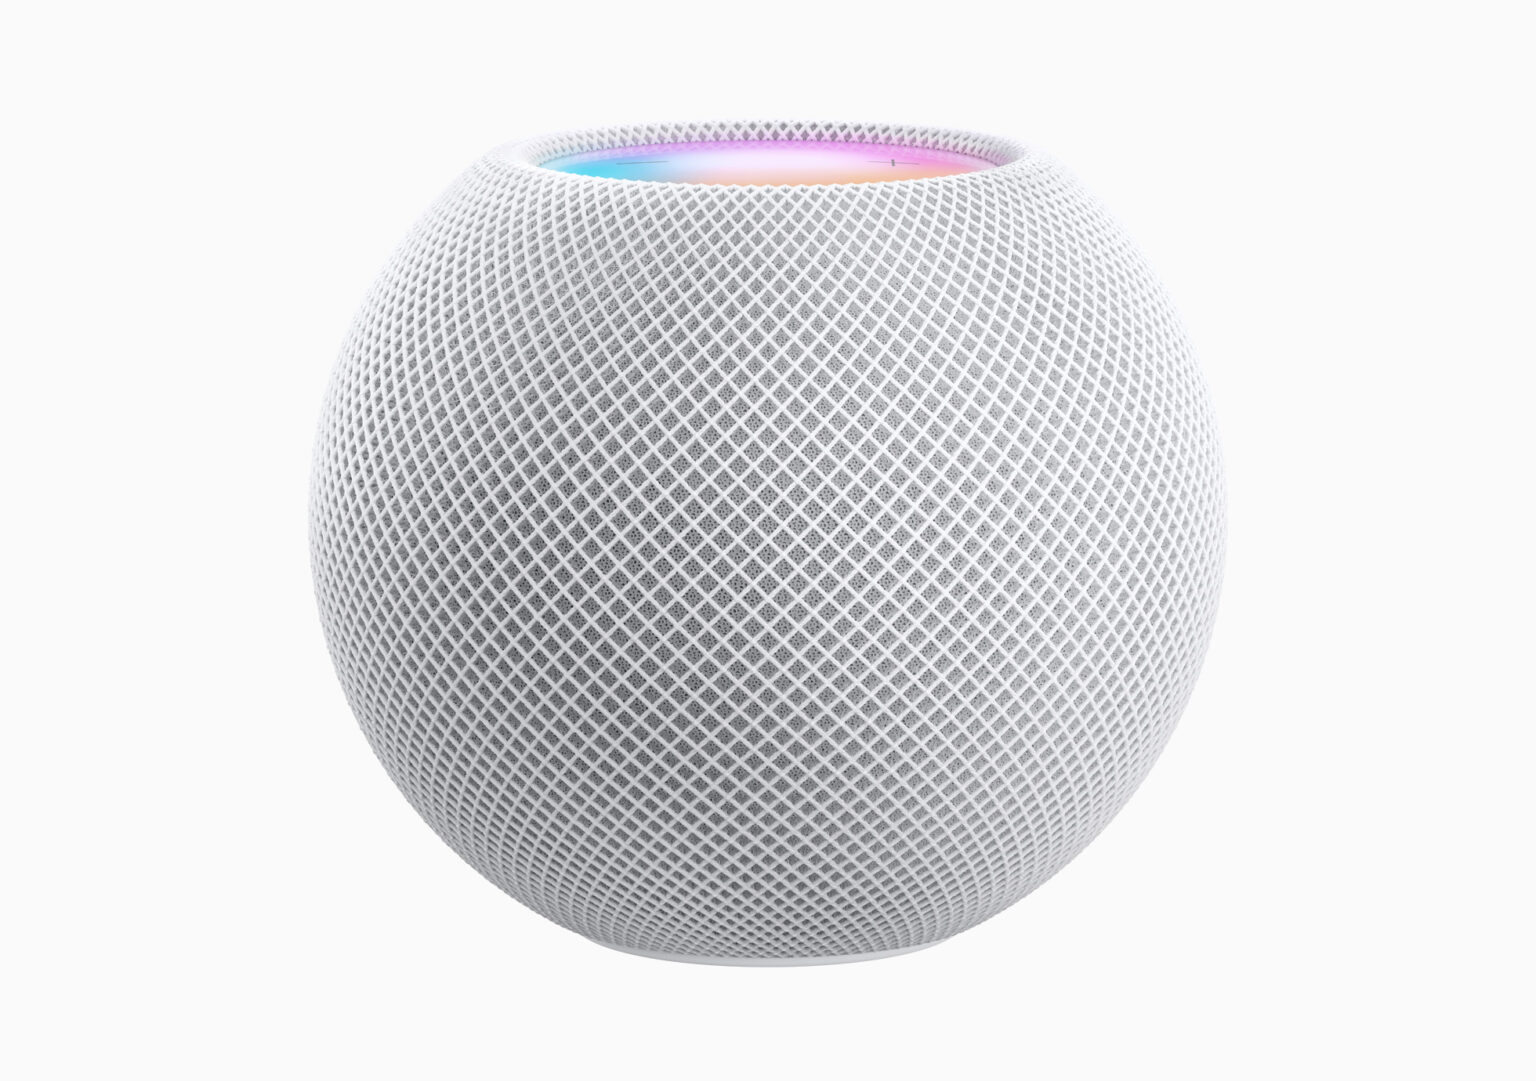 First HomePod mini reviews: Better late than never